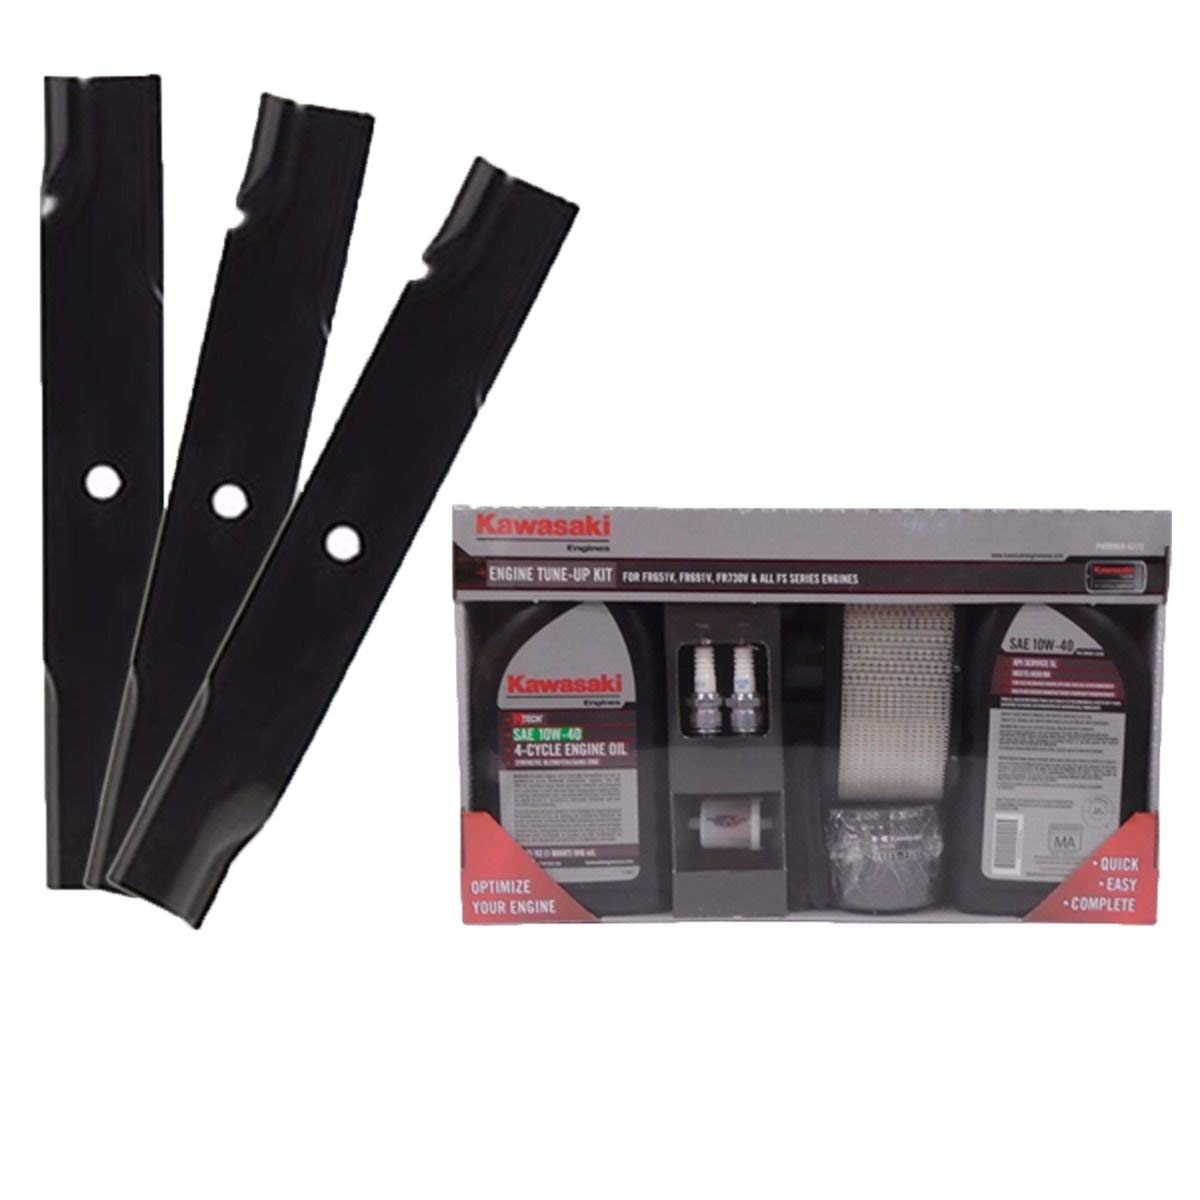 52'' Raptor and Raptor Limited Kawasaki Tune Up Kit with Blades